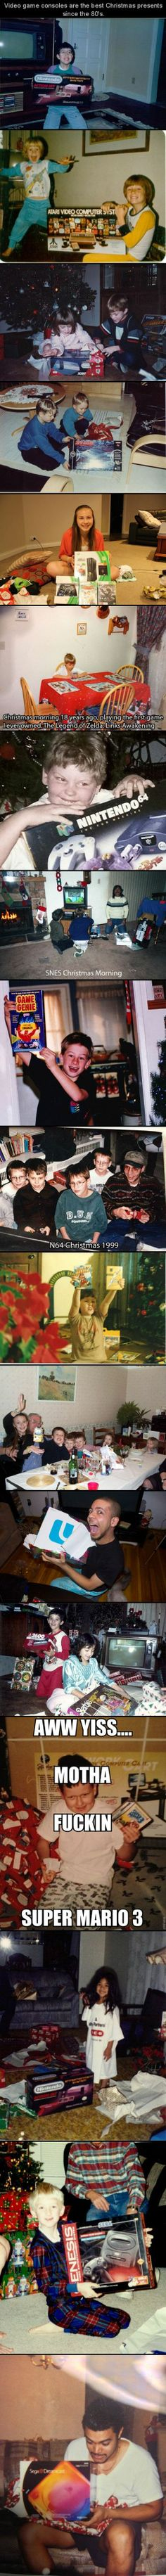 Video Game Consoles for Christmas...